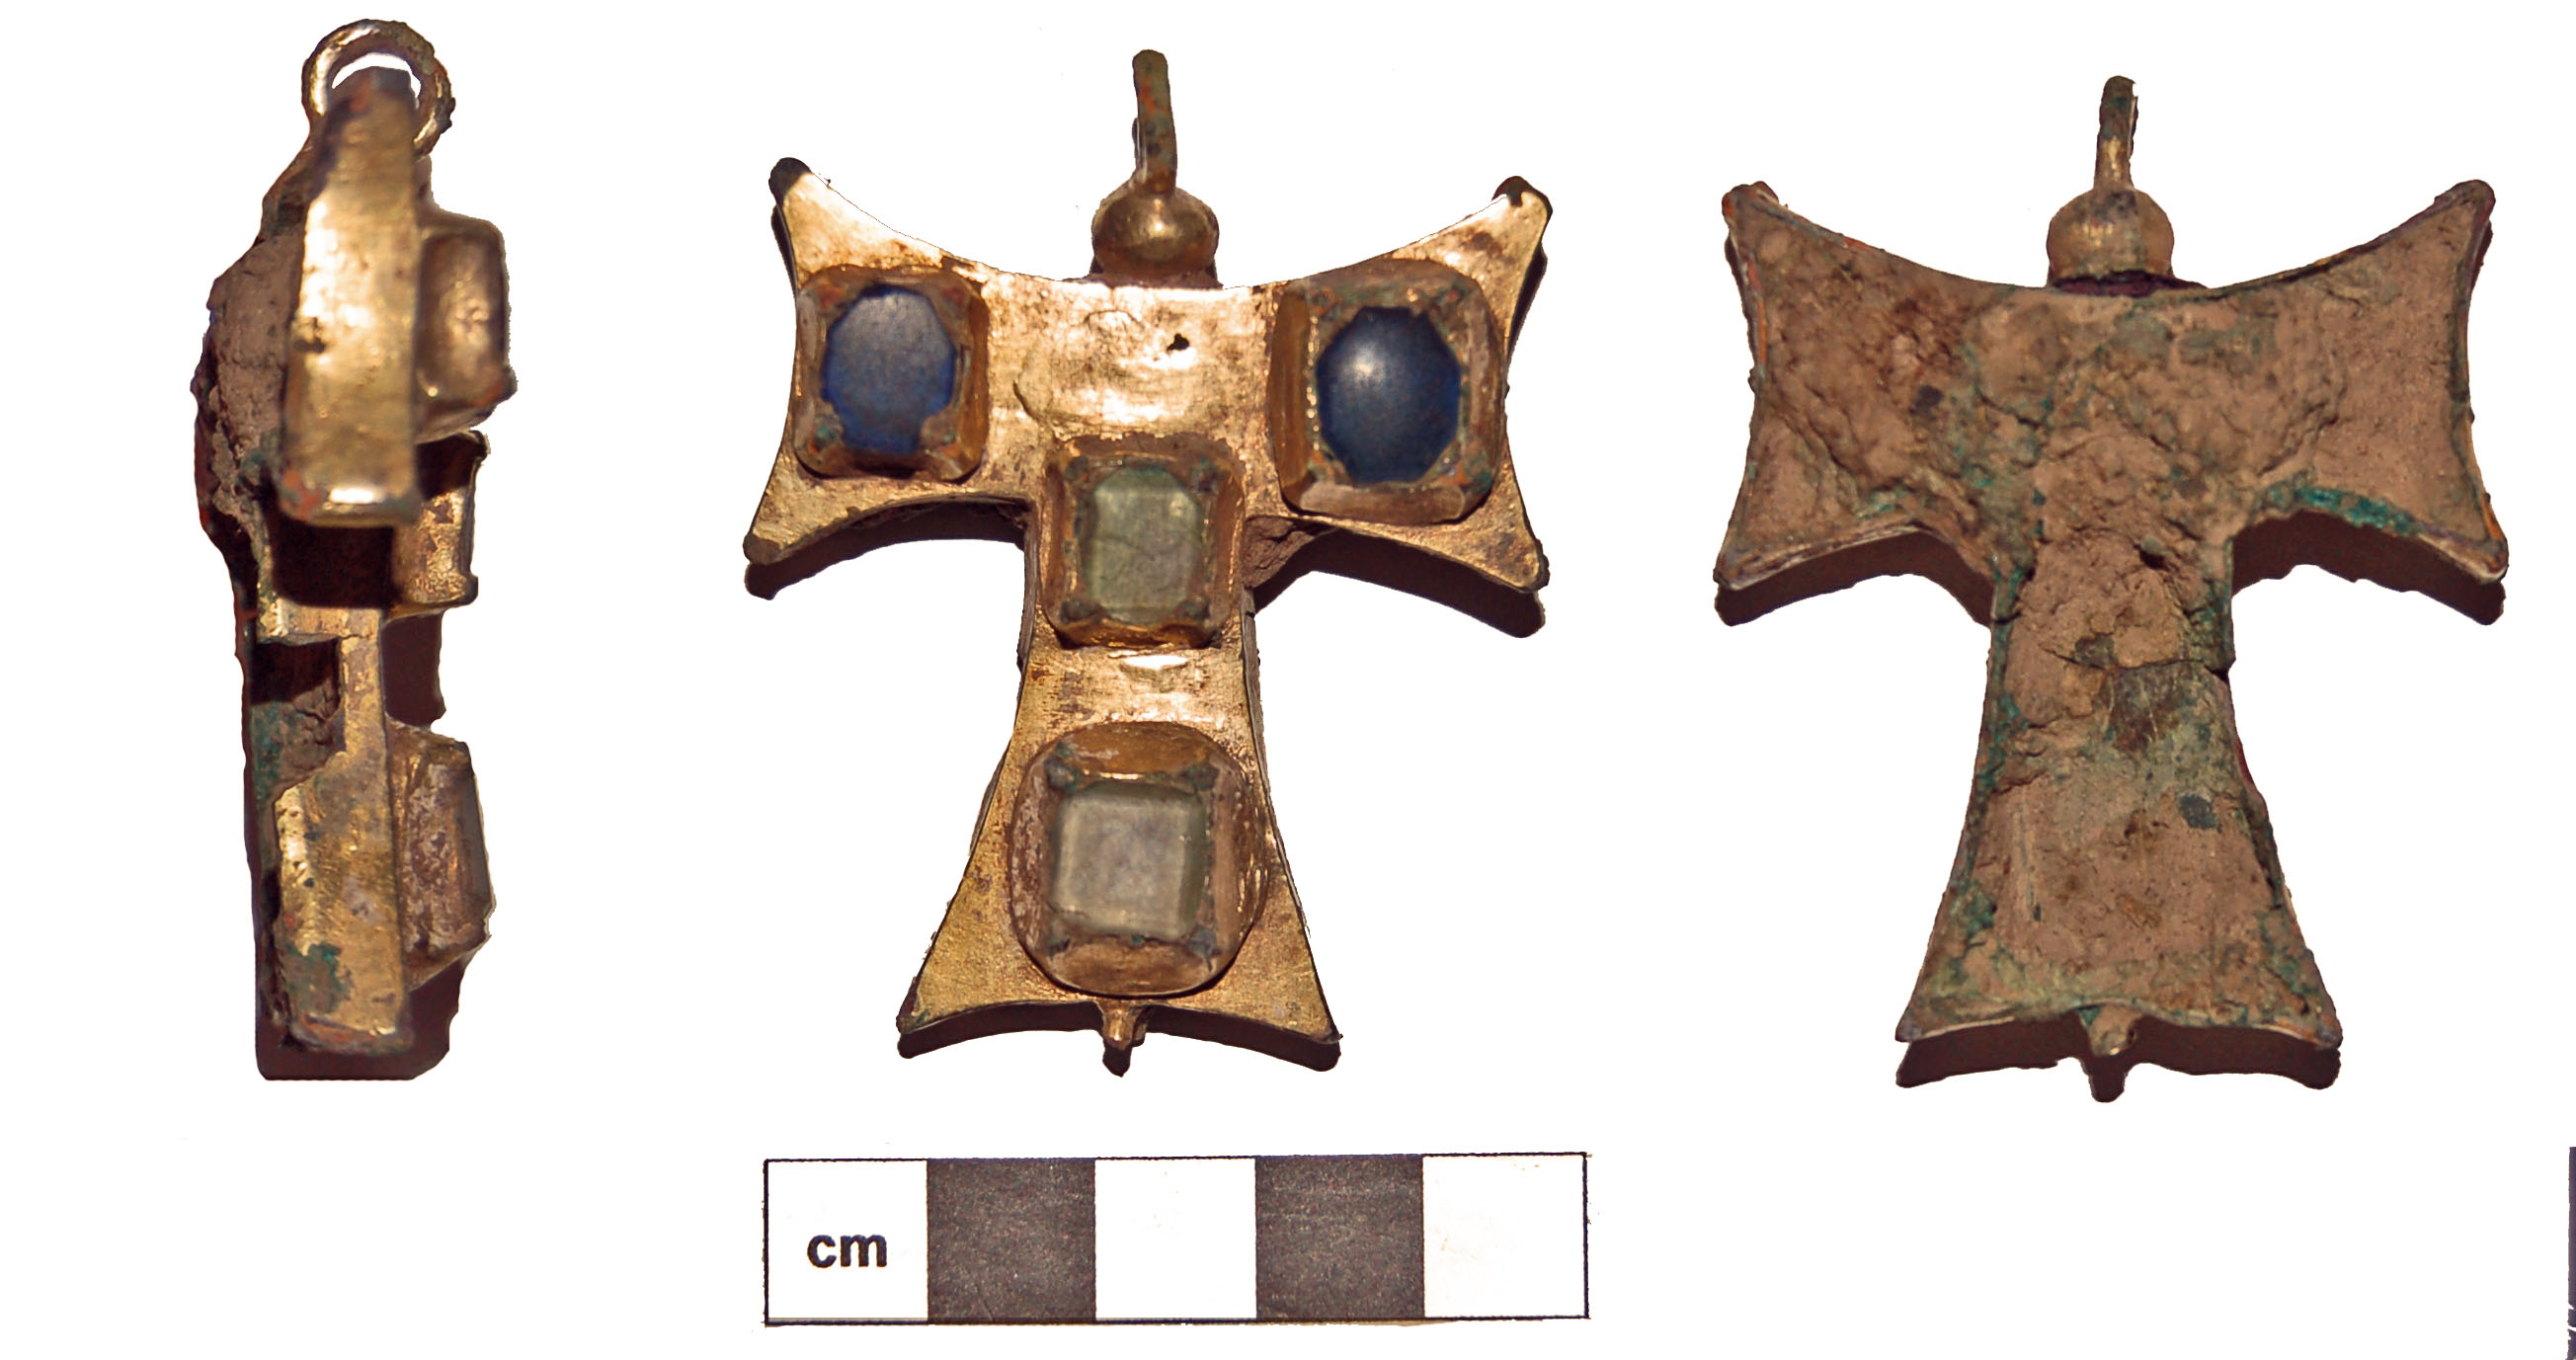 Tau cross from East Devon (DEV-4EAD04). Medieval copper alloy reliquary pendant dating from 1400-1500 AD.